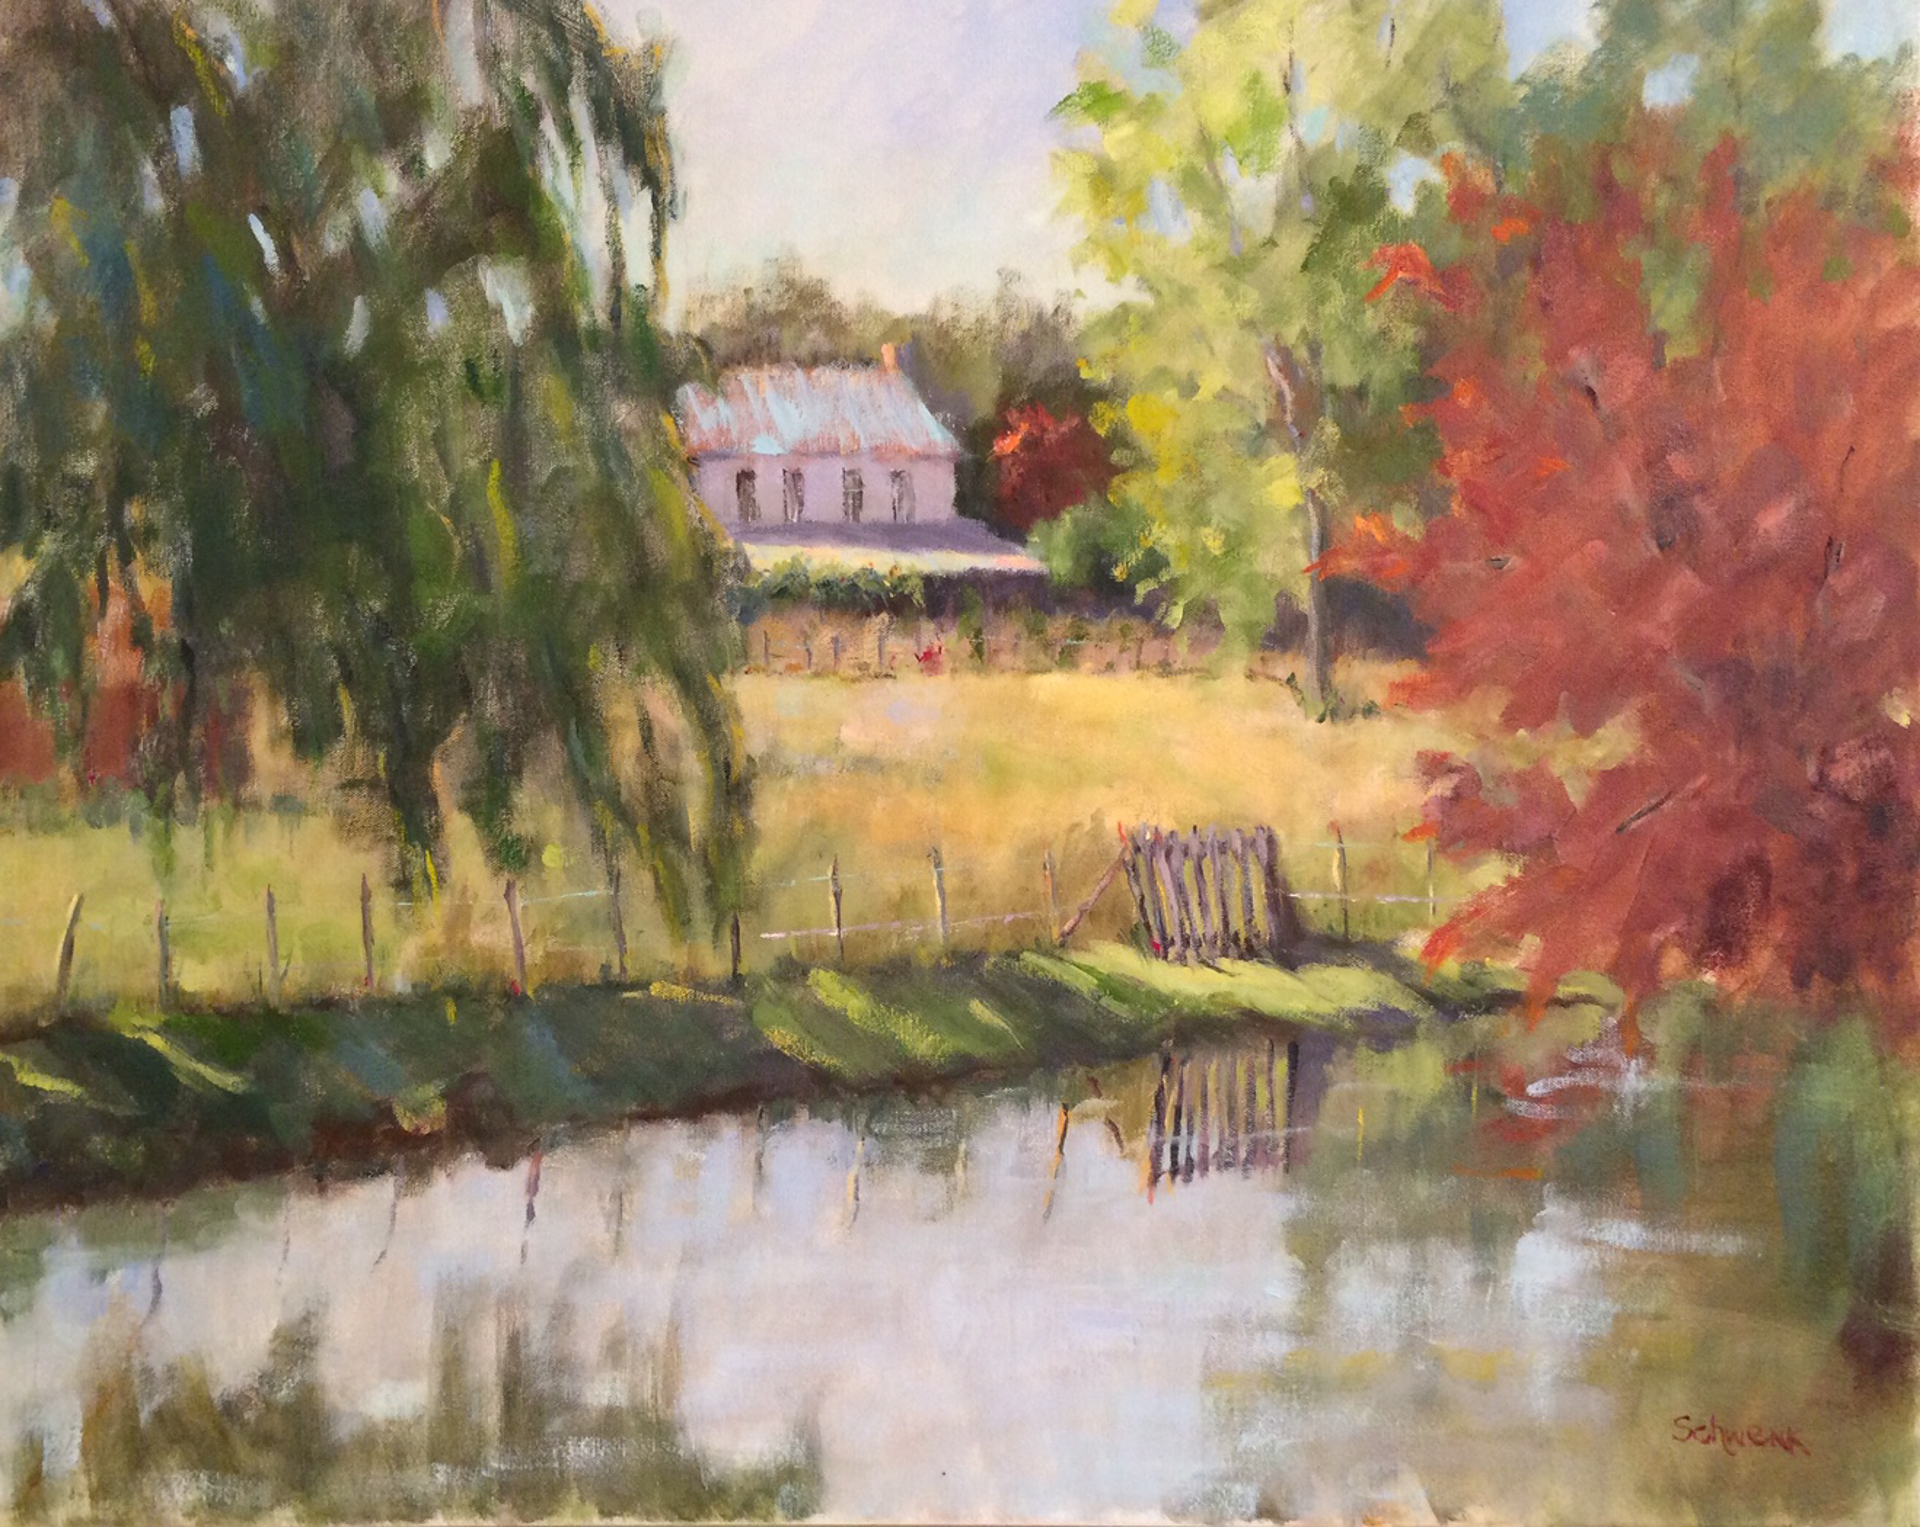 Summer Day by the River by Sharon Schwenk